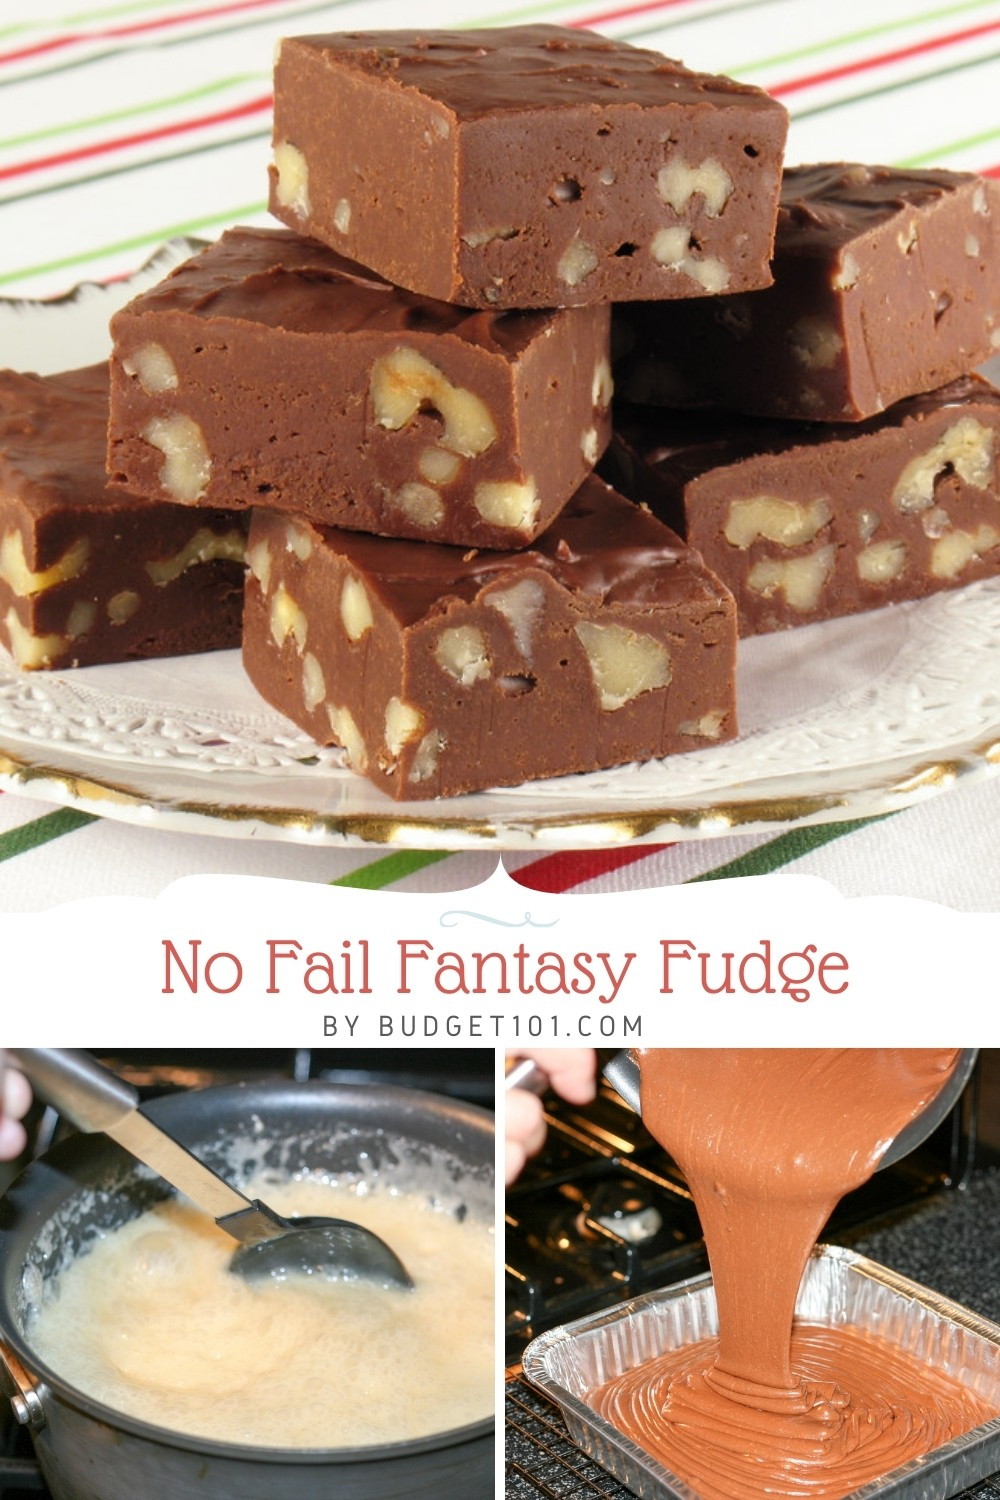 No Fail Fantasy Fudge- the most-forgiving recipe for even the most novice of candy-makers! Perfectly creamy, smooth, never grainy! #budget101 #fantasyfudge #myo #fromscratch #christmascandy